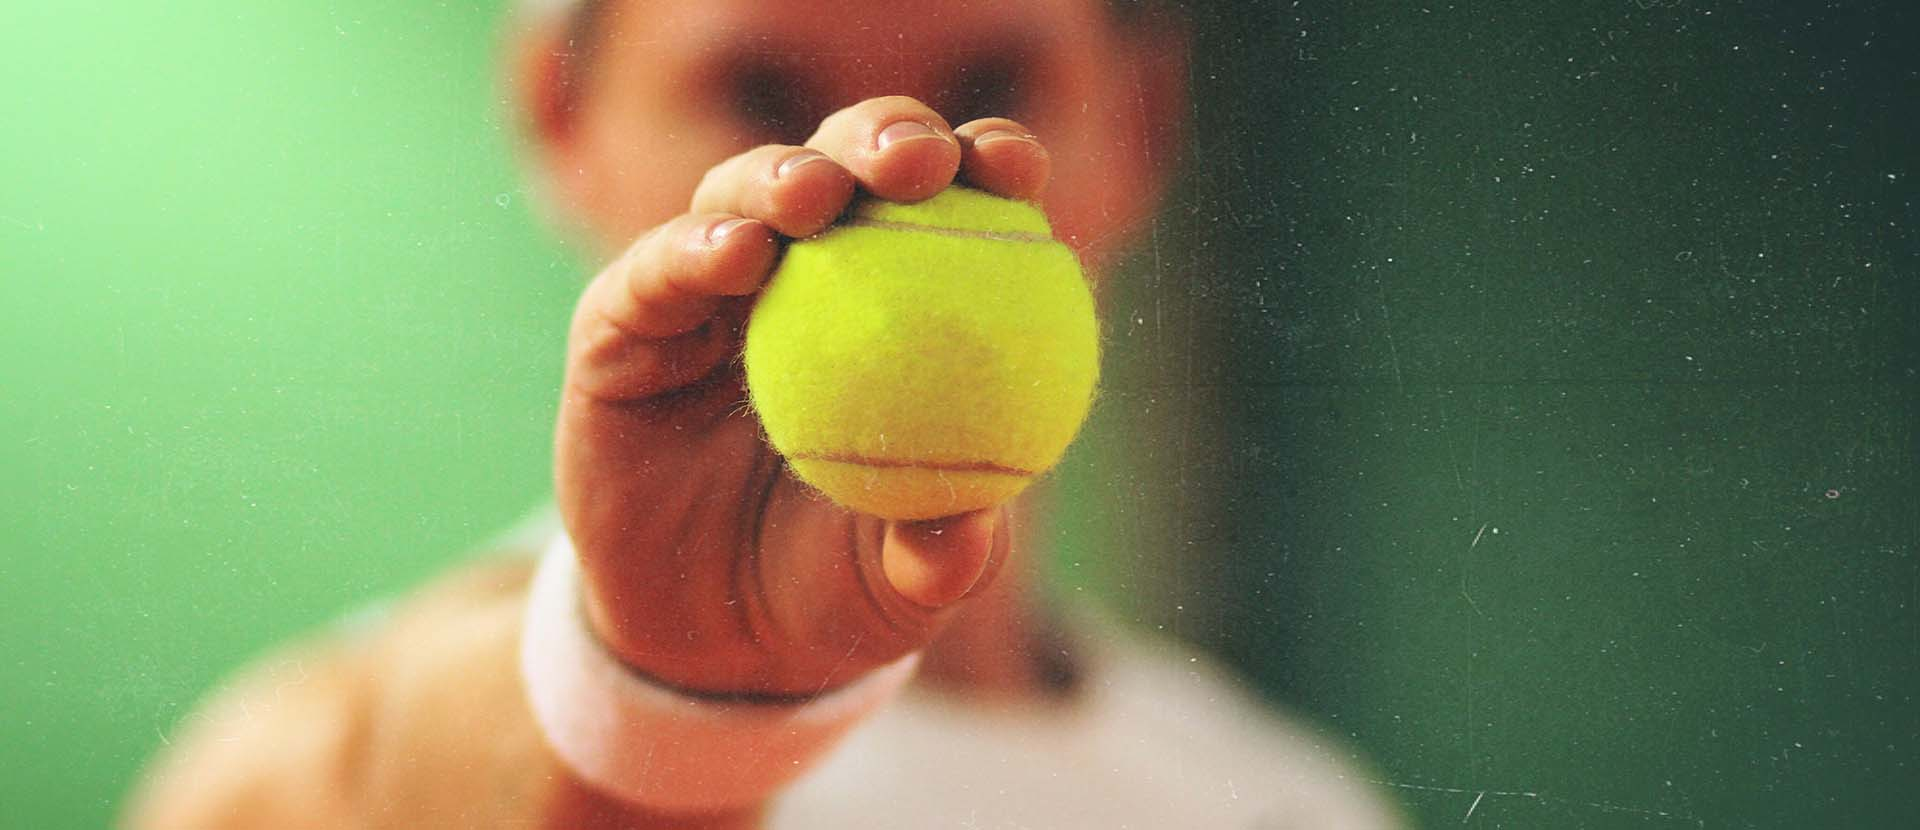 marketing esperienziale finanziario atp tennis